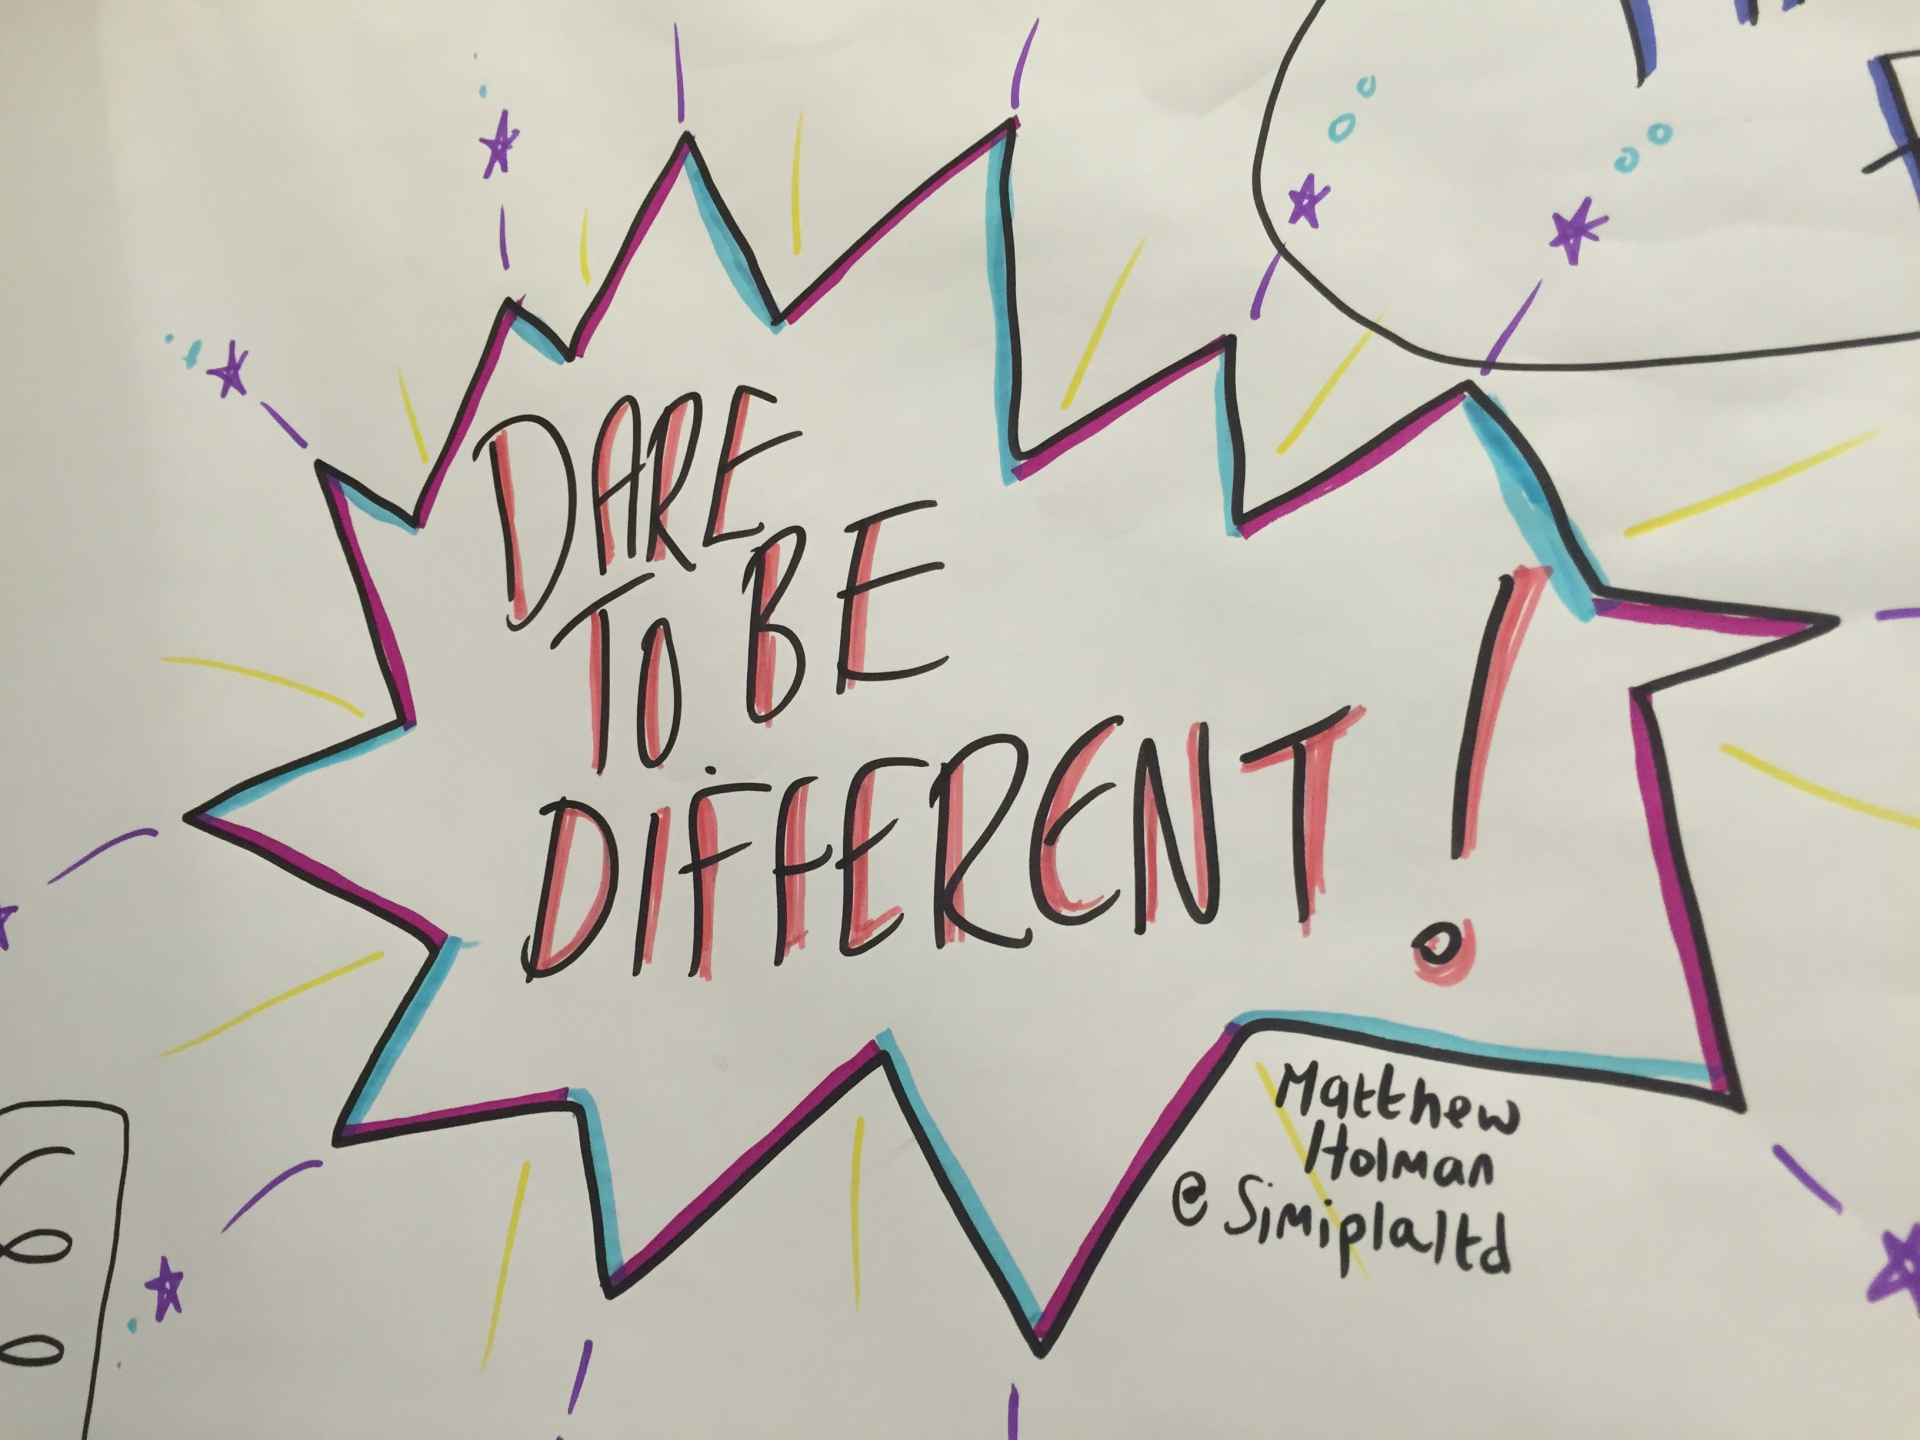 DaRe To Be DiFfErEnT!